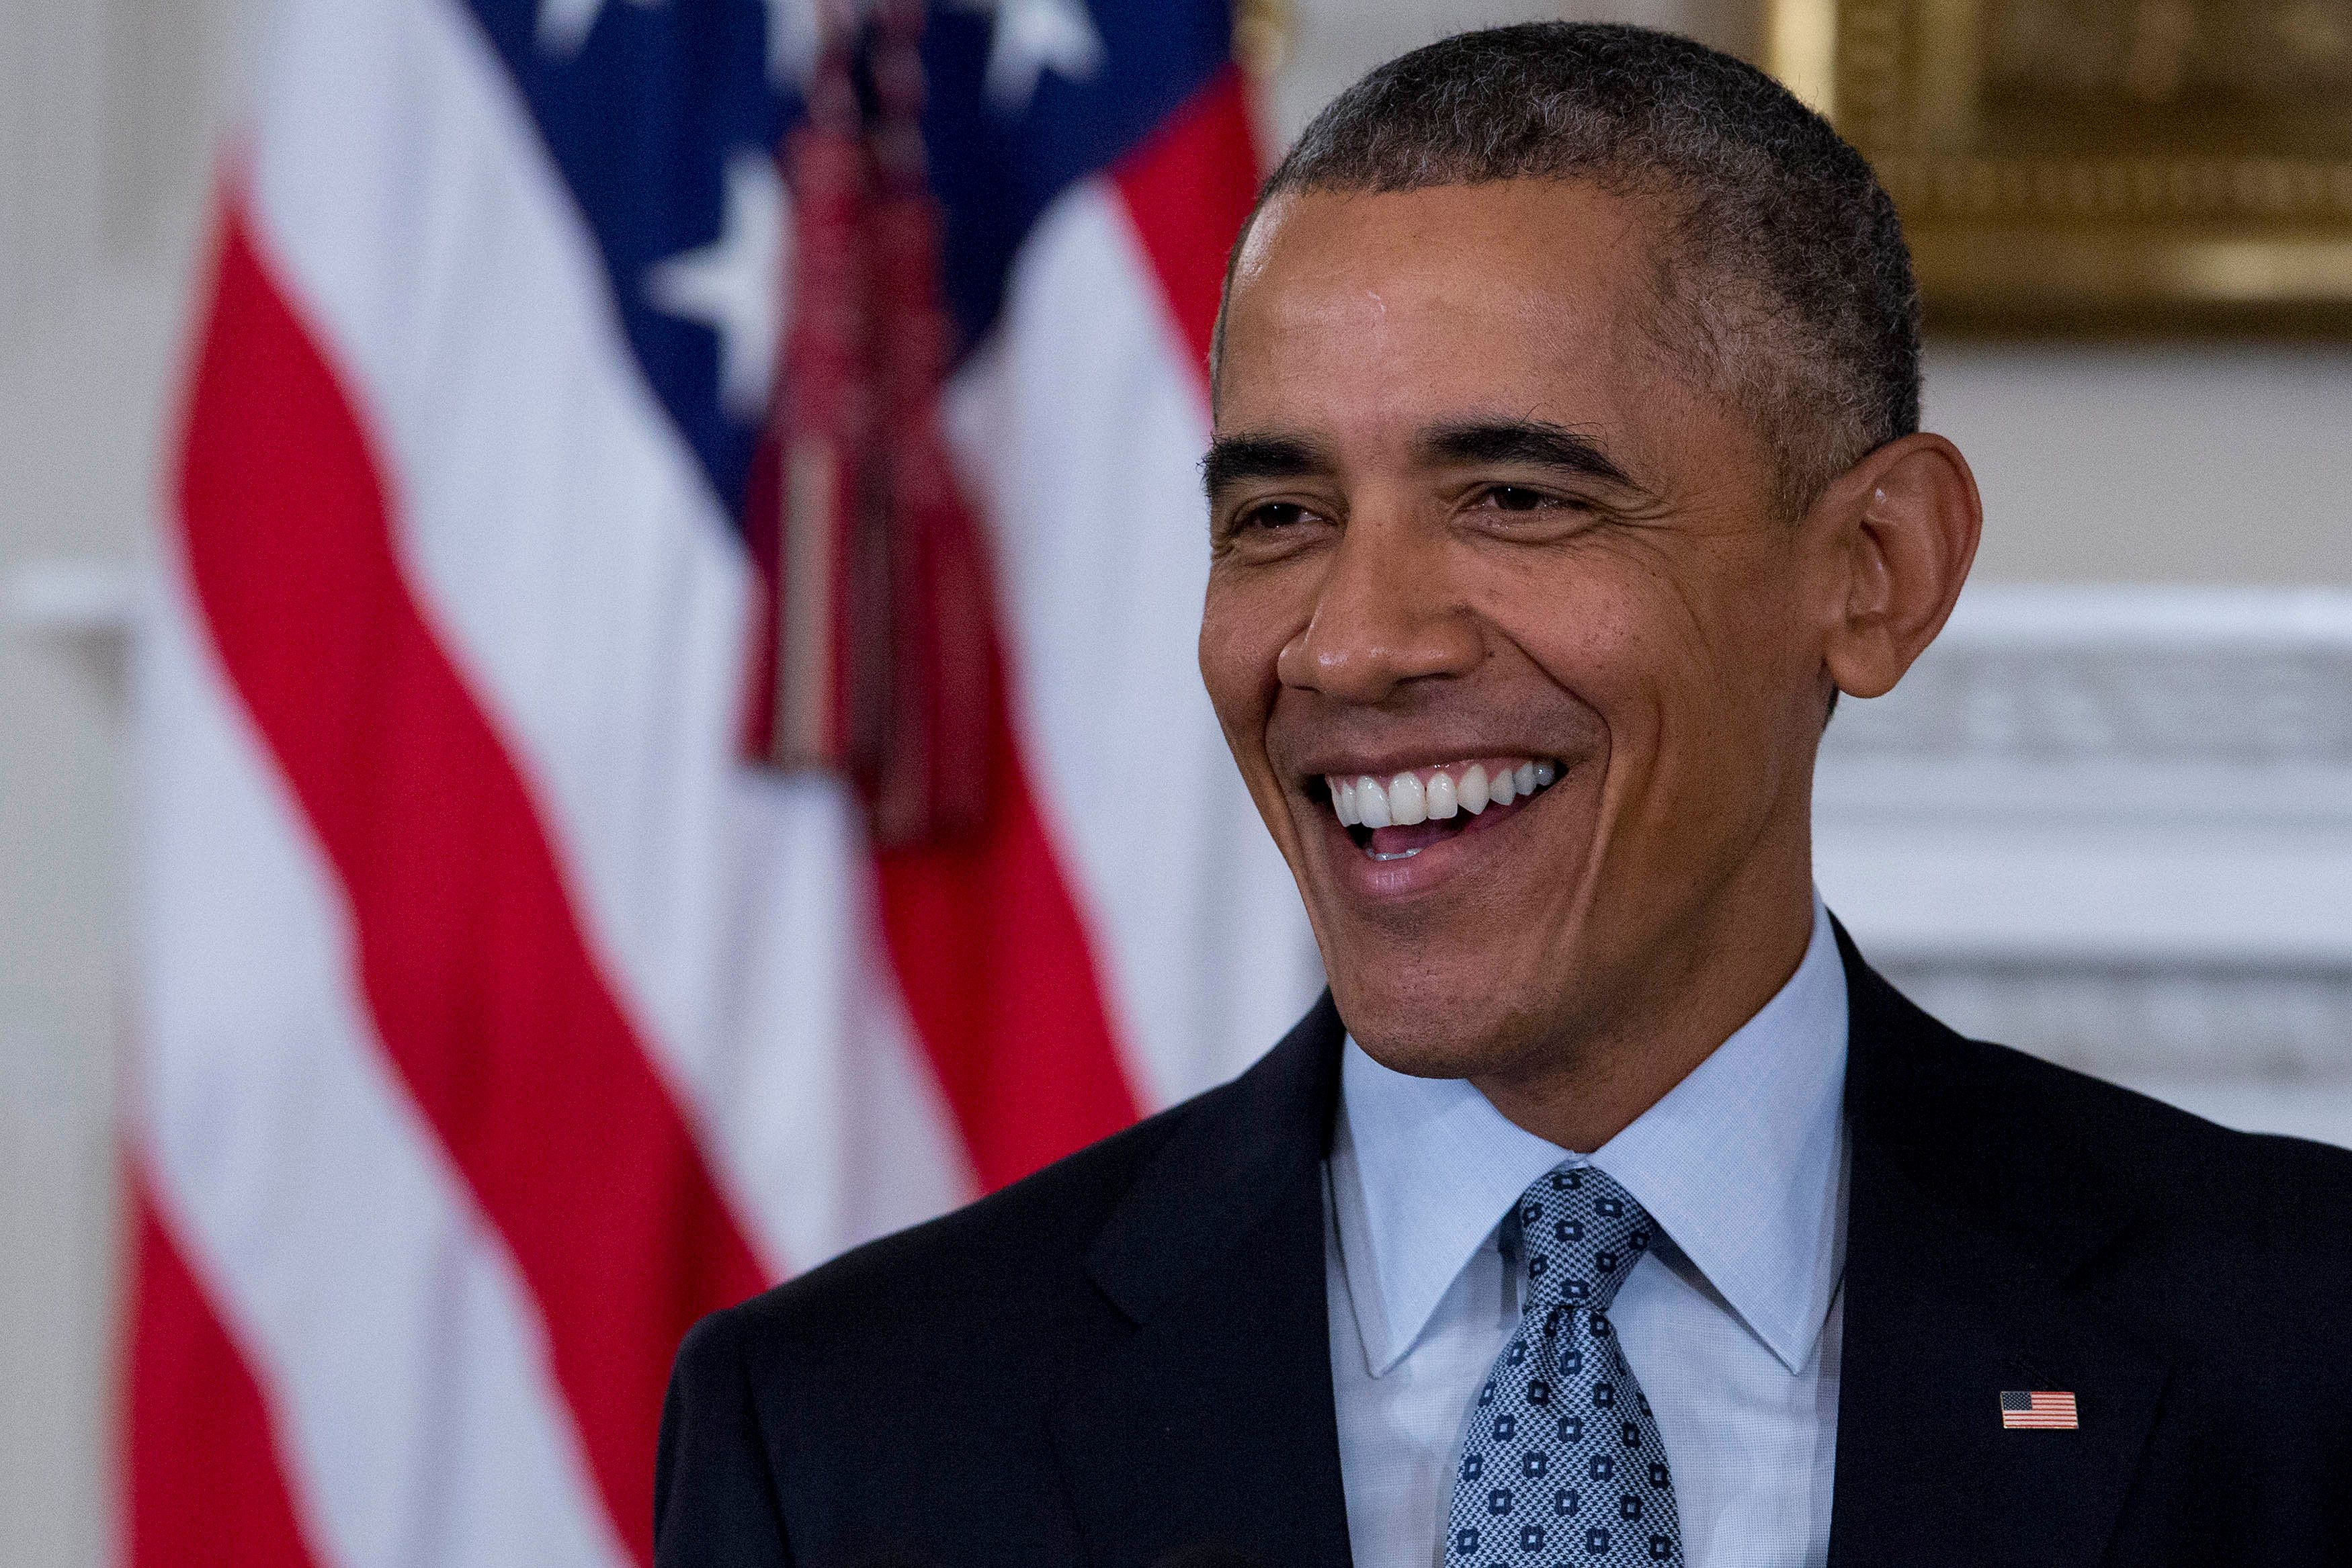 U.S. President Barack Obama, smiles during a news conference in the State Dining Room of the White House in Washington, D.C., U.S., on Friday, Oct. 2, 2015. Obama announced that Education Secretary Arne Duncan is stepping down in December and will be replaced by Deputy Secretary John B. King Jr. Photographer: Andrew Harrer/Bloomberg via Getty Images